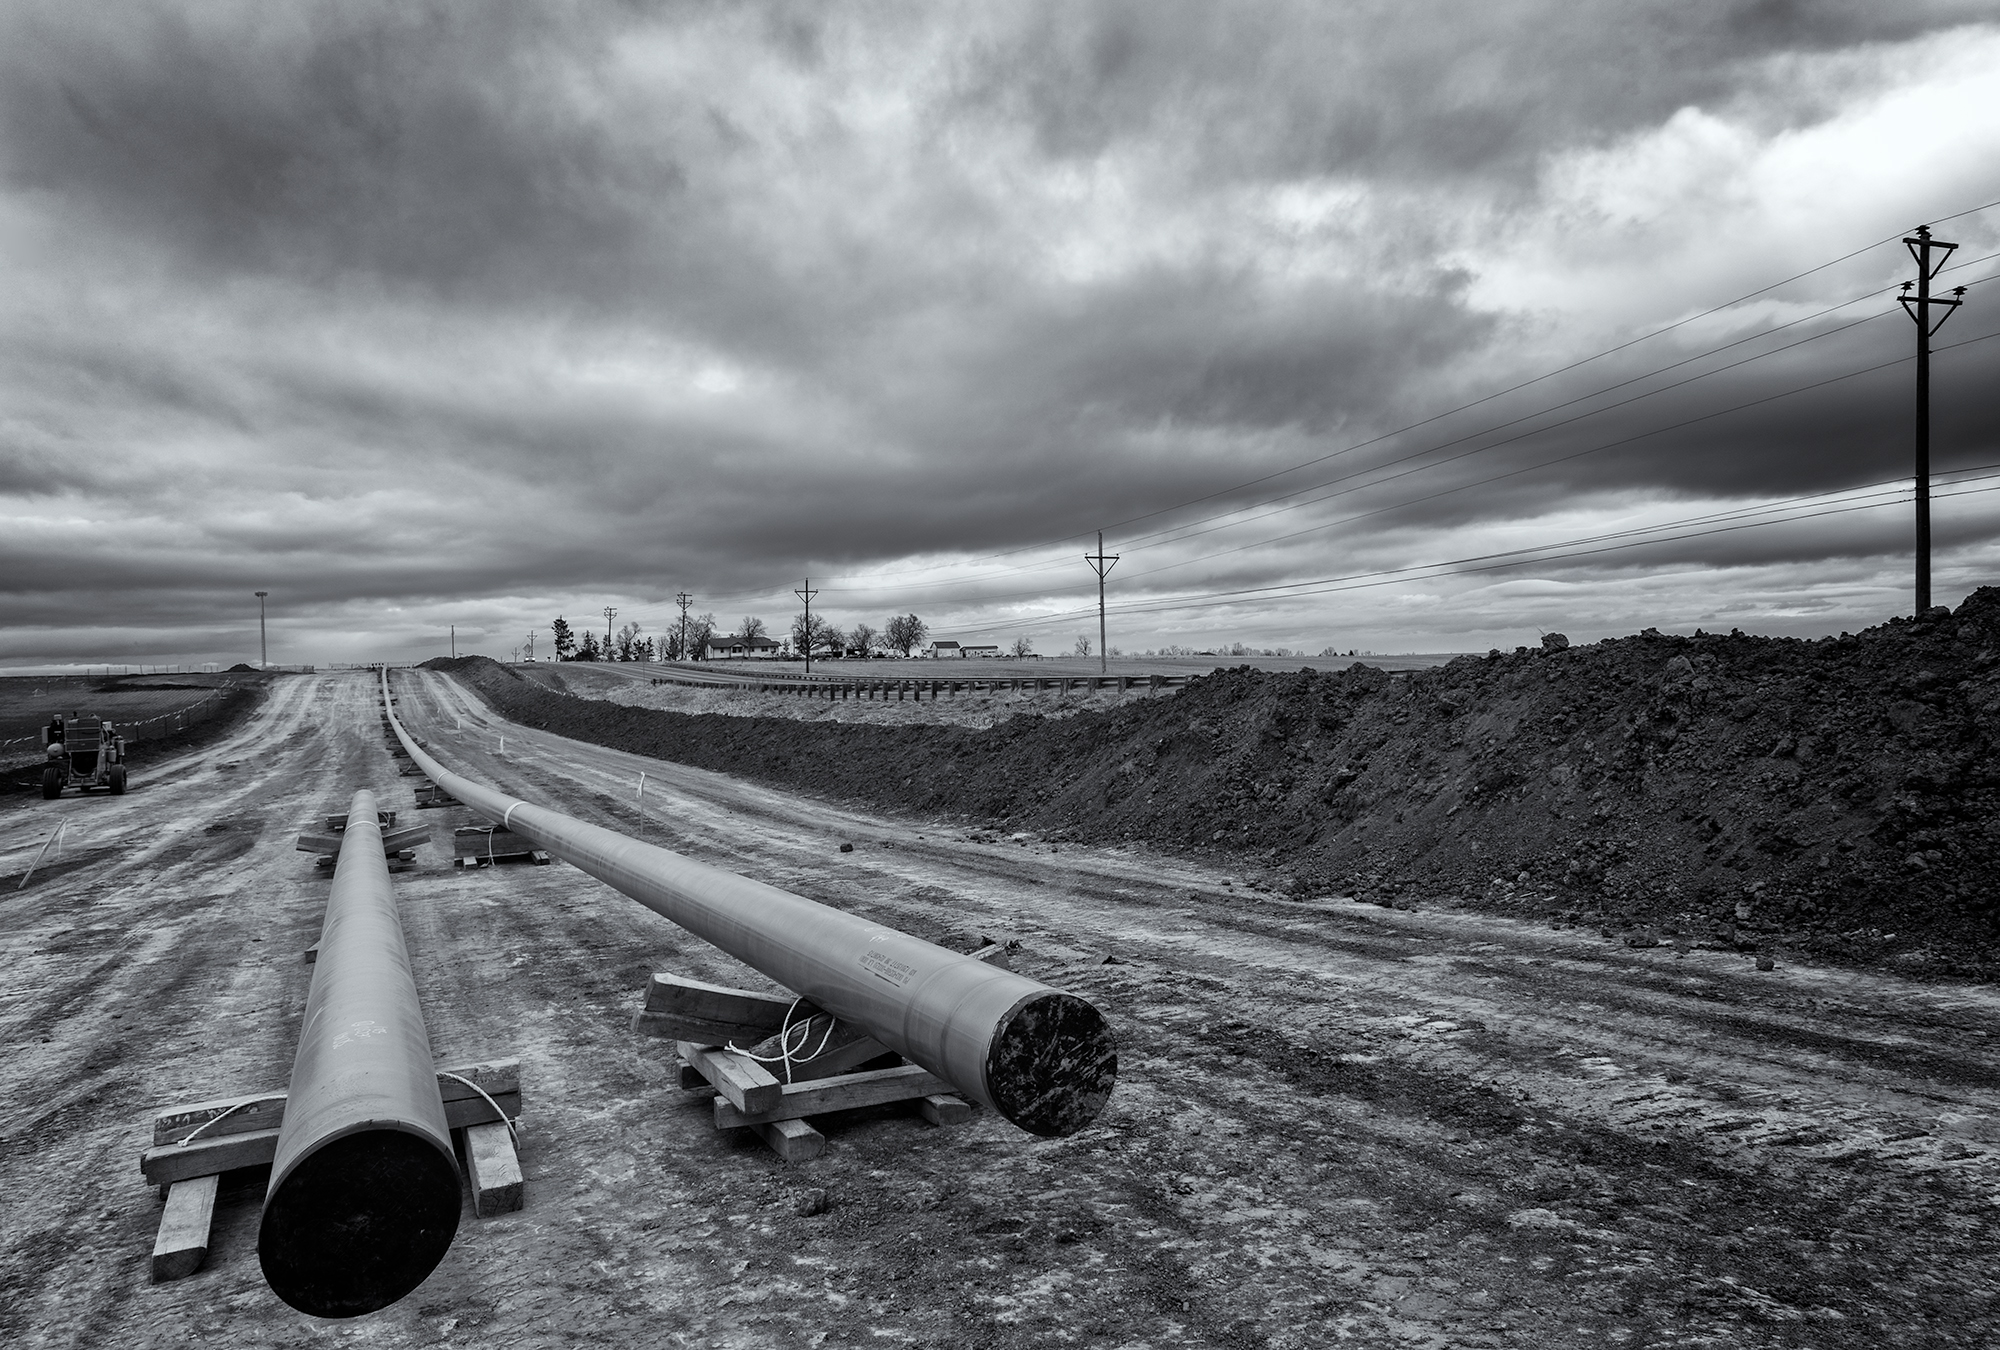 New Pipes, 95th St and Hwy 52. Weld County, Colorado, 2016